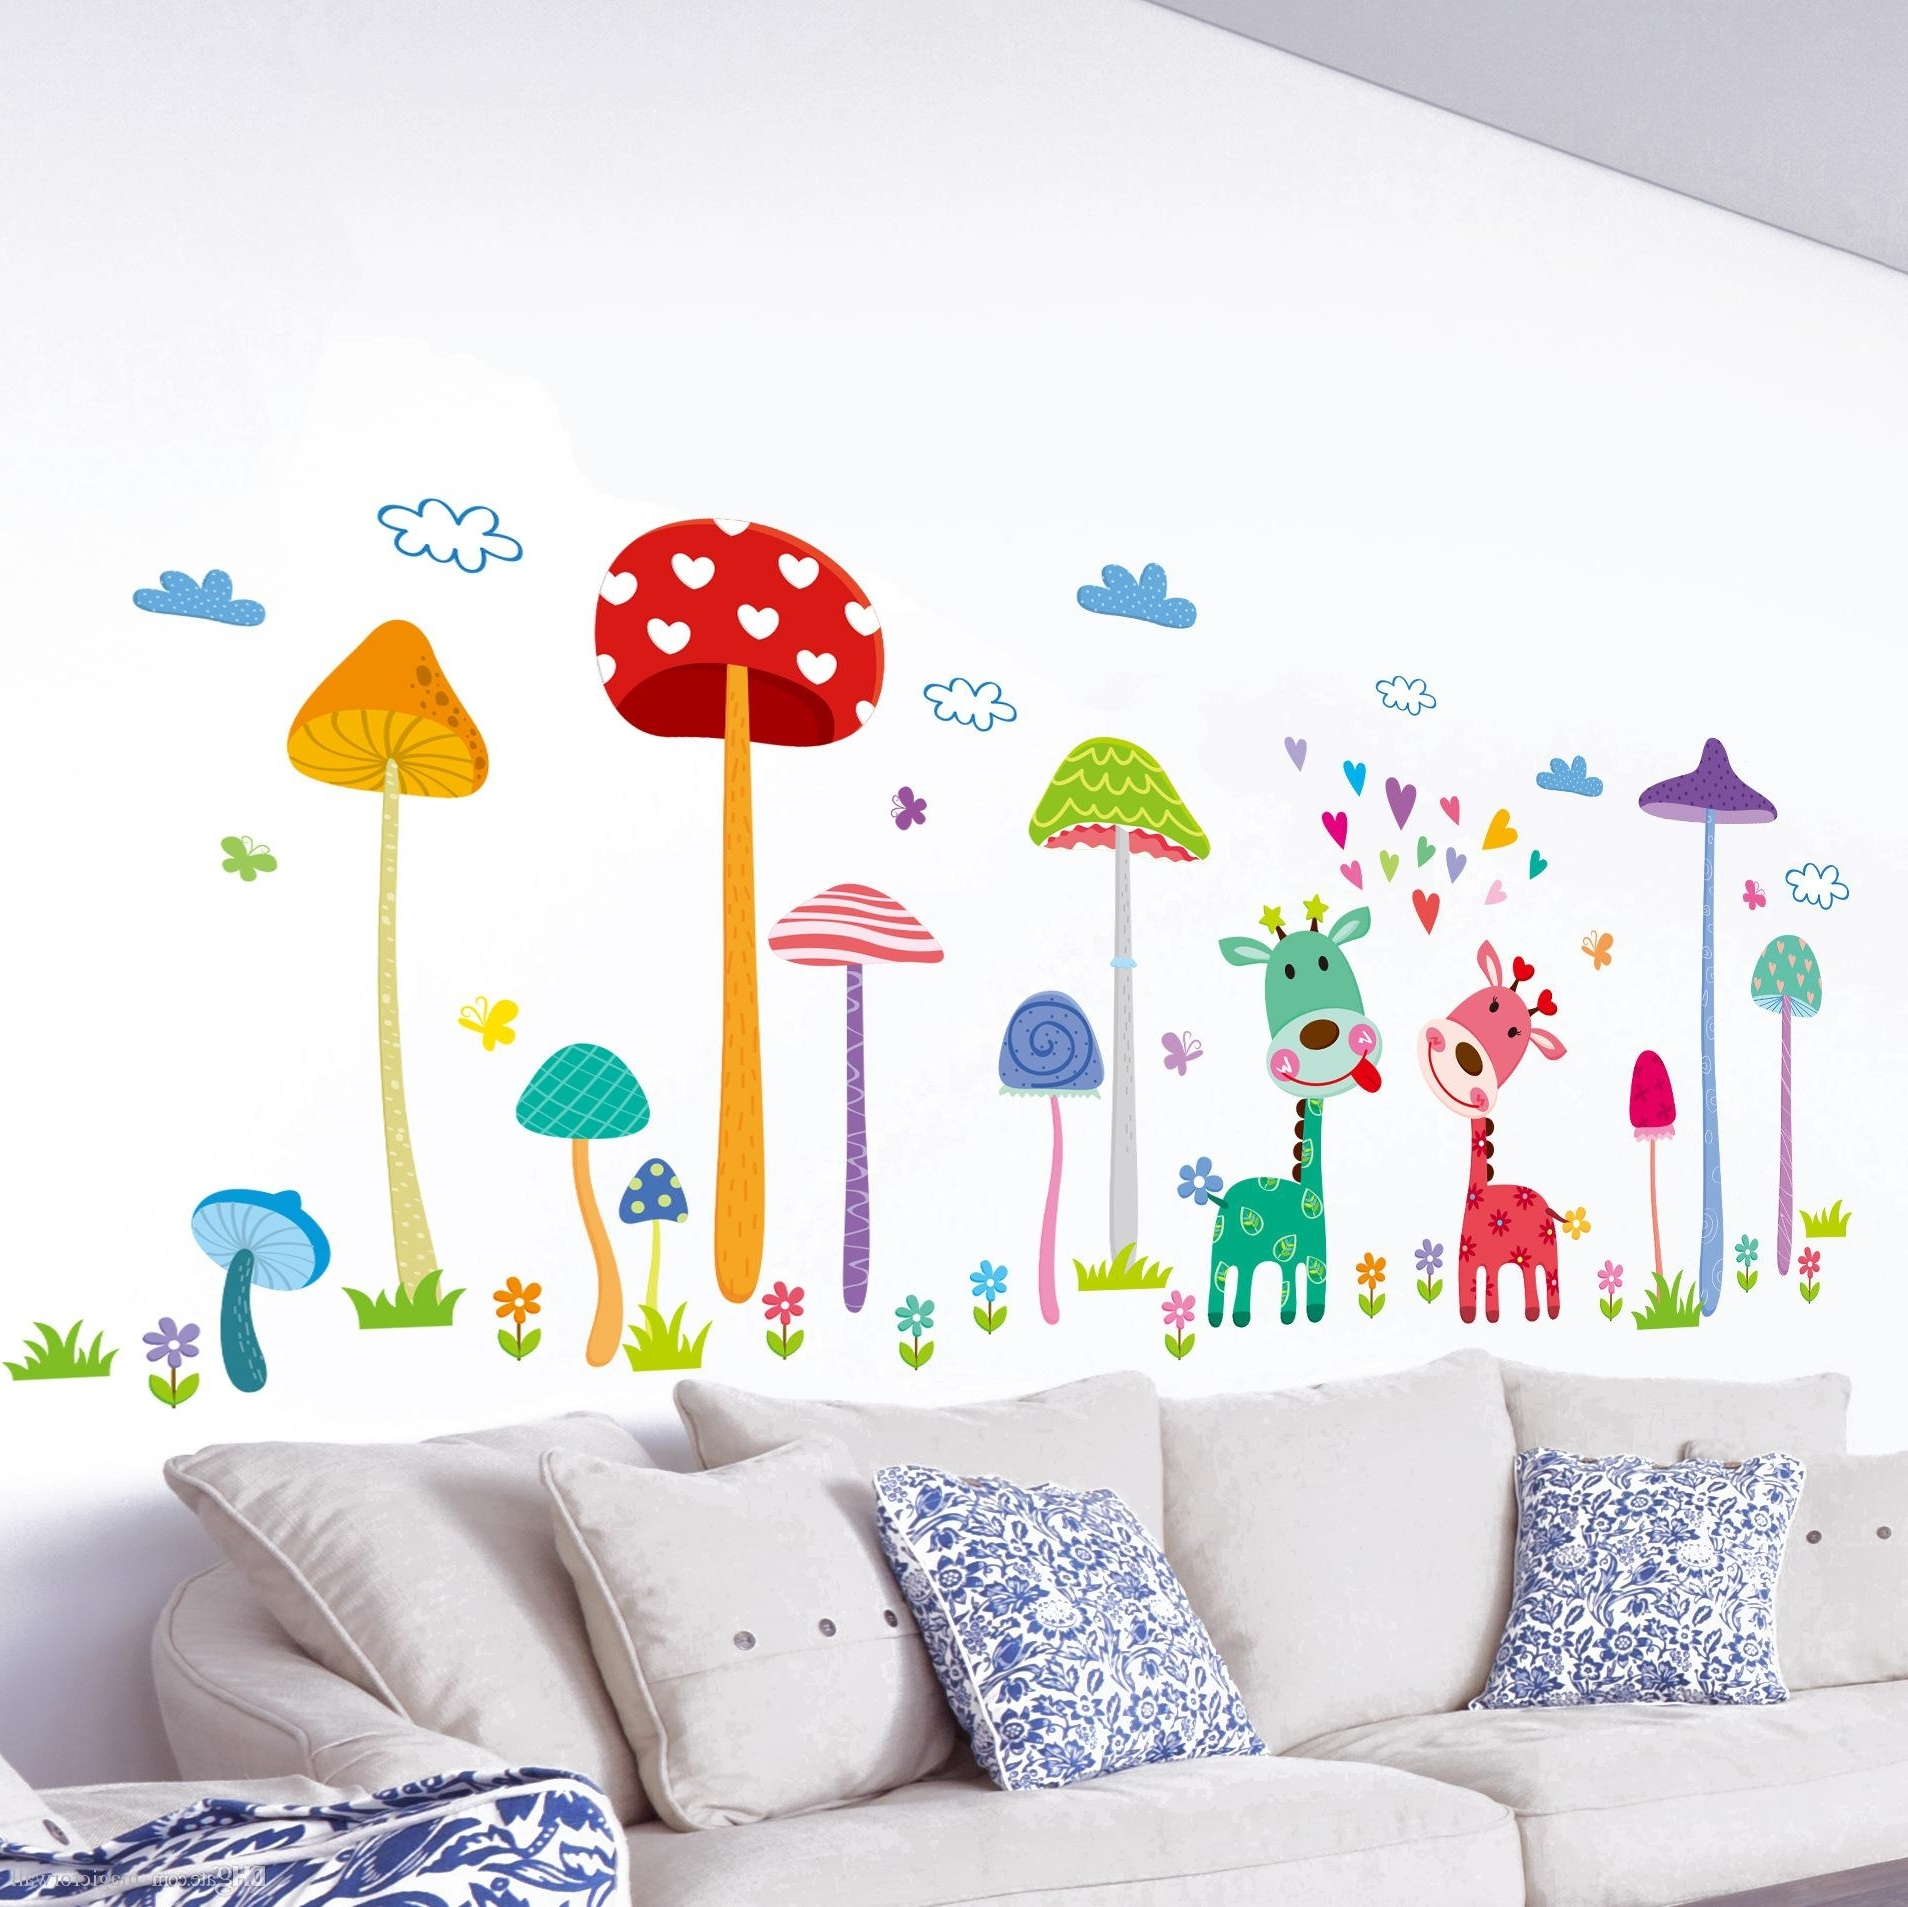 Forest Mushroom Deer Animals Home Wall Art Mural Decor Kids Babies Intended For Creative Kids Wall Art Ideas (Image 8 of 13)